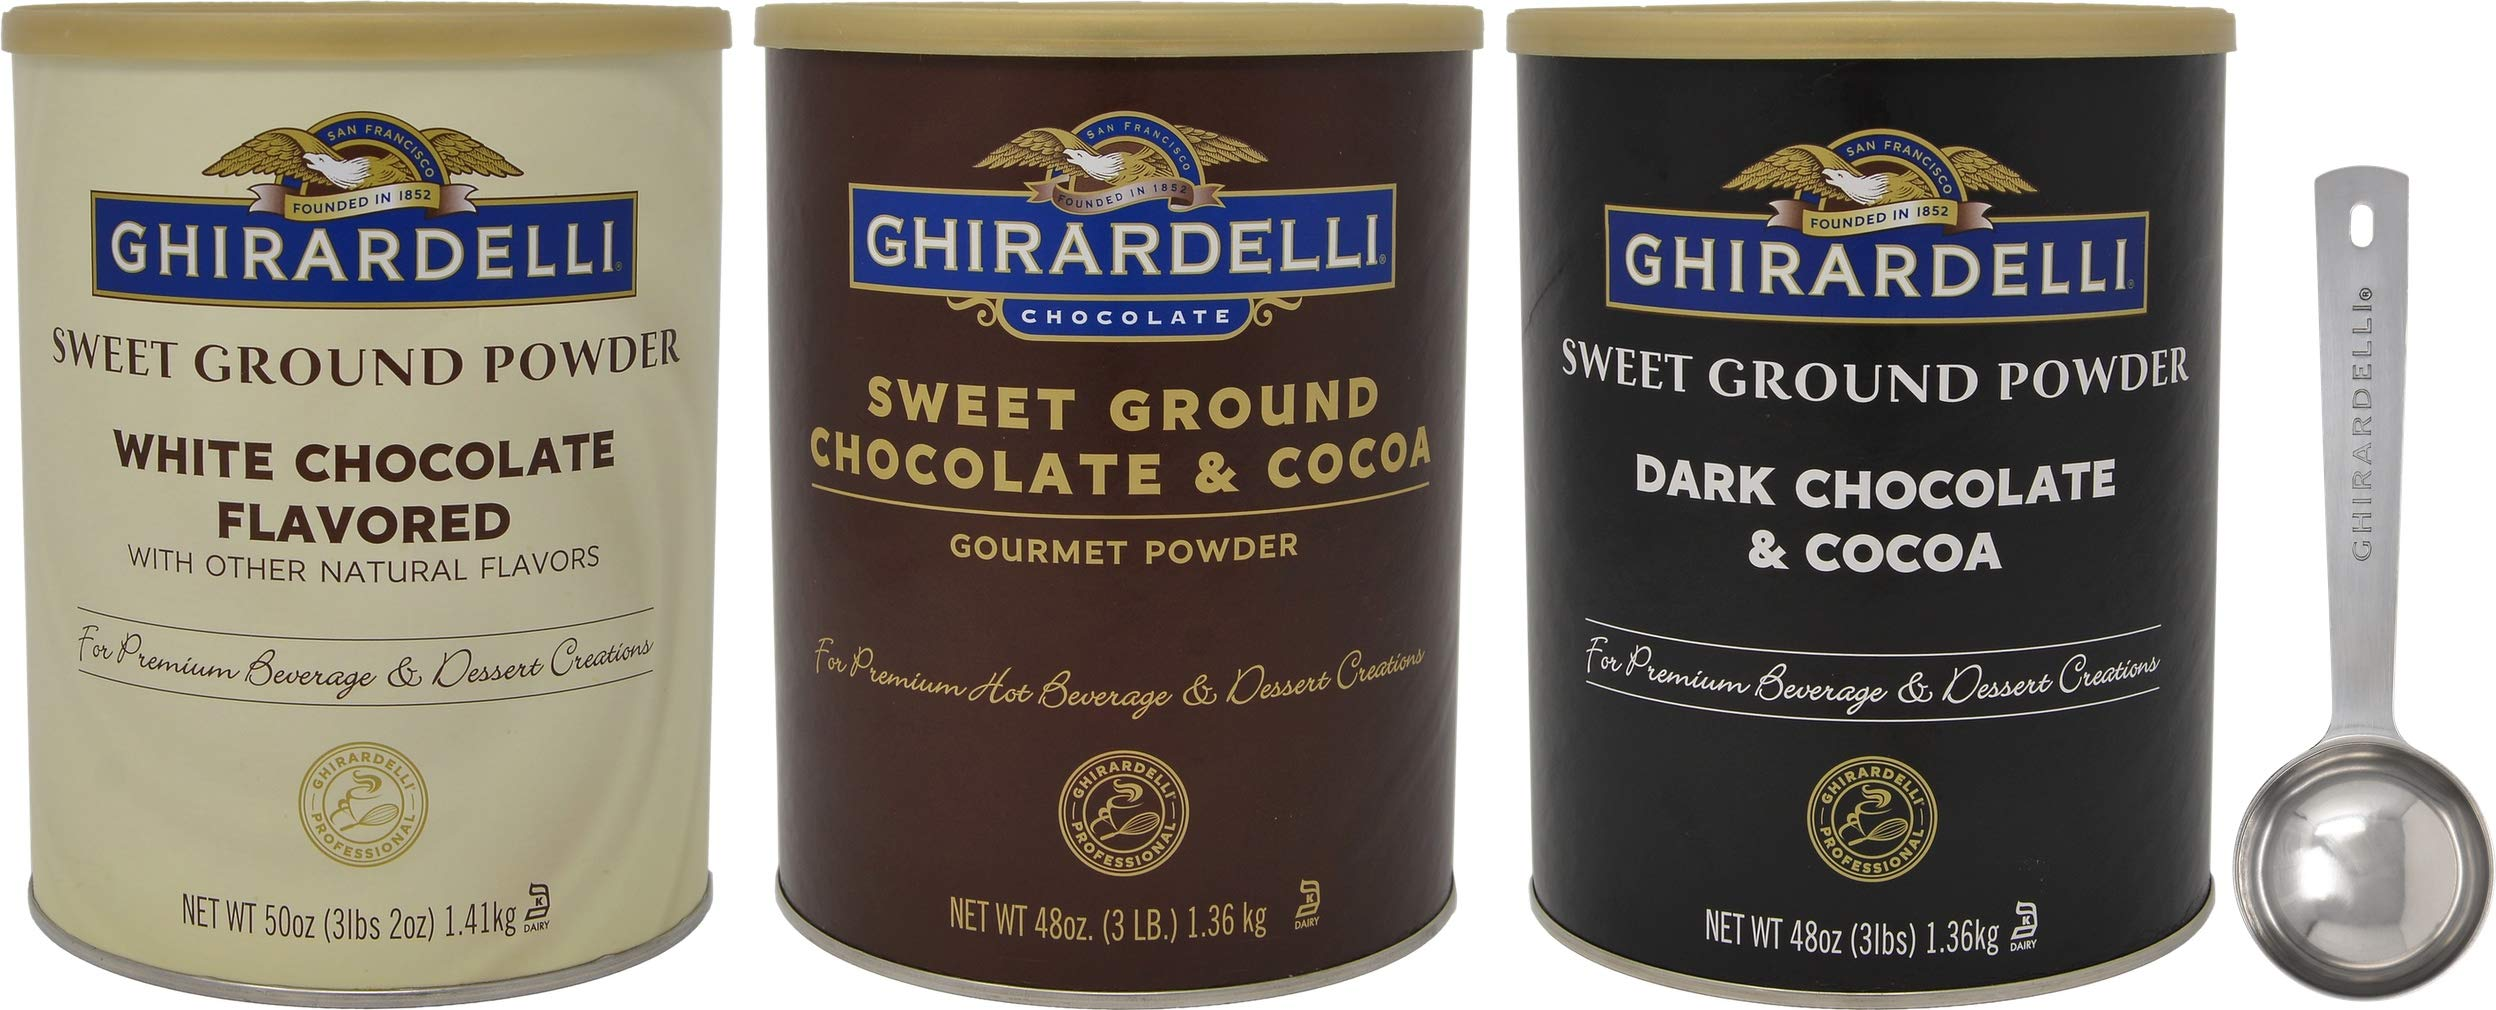 Ghirardelli Sweet Ground Premium Powder 3 Flavor Variety, 1 - 3 Pound Can Each, White Chocolate, Chocolate, and Dark Chocolate with Limited Edition Measuring Spoon by Ghirardelli